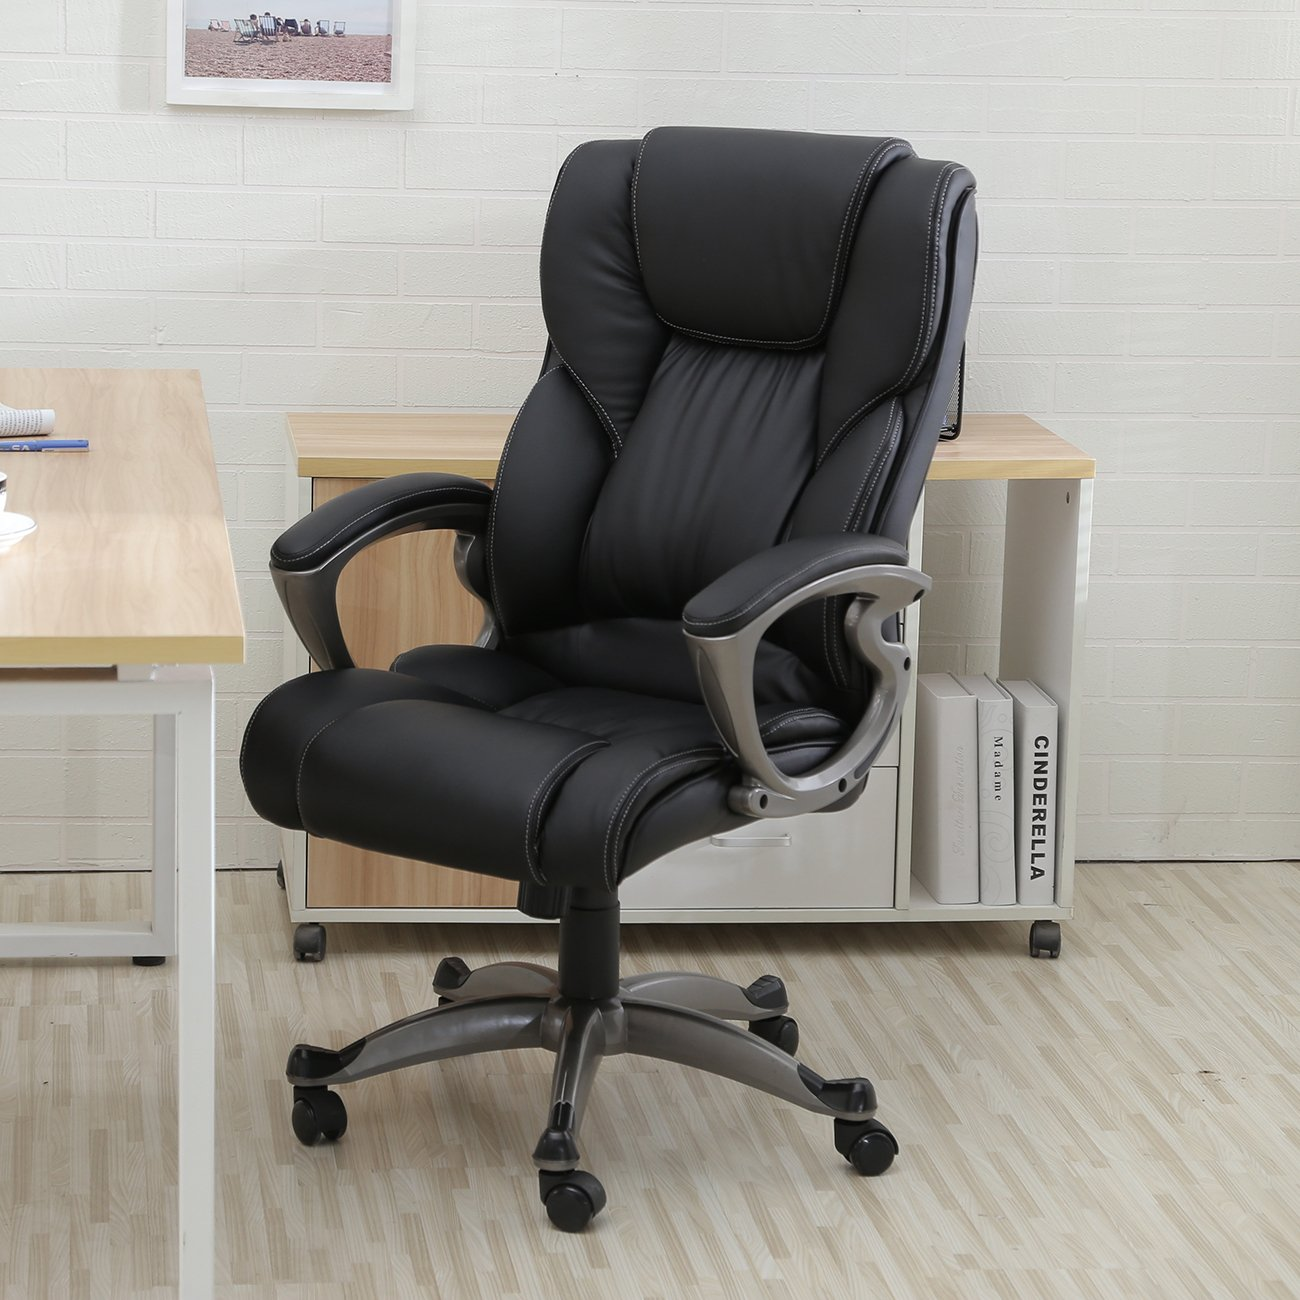 Belleze High Back Executive PU Leather Office Chair, Black 048-GM-48102